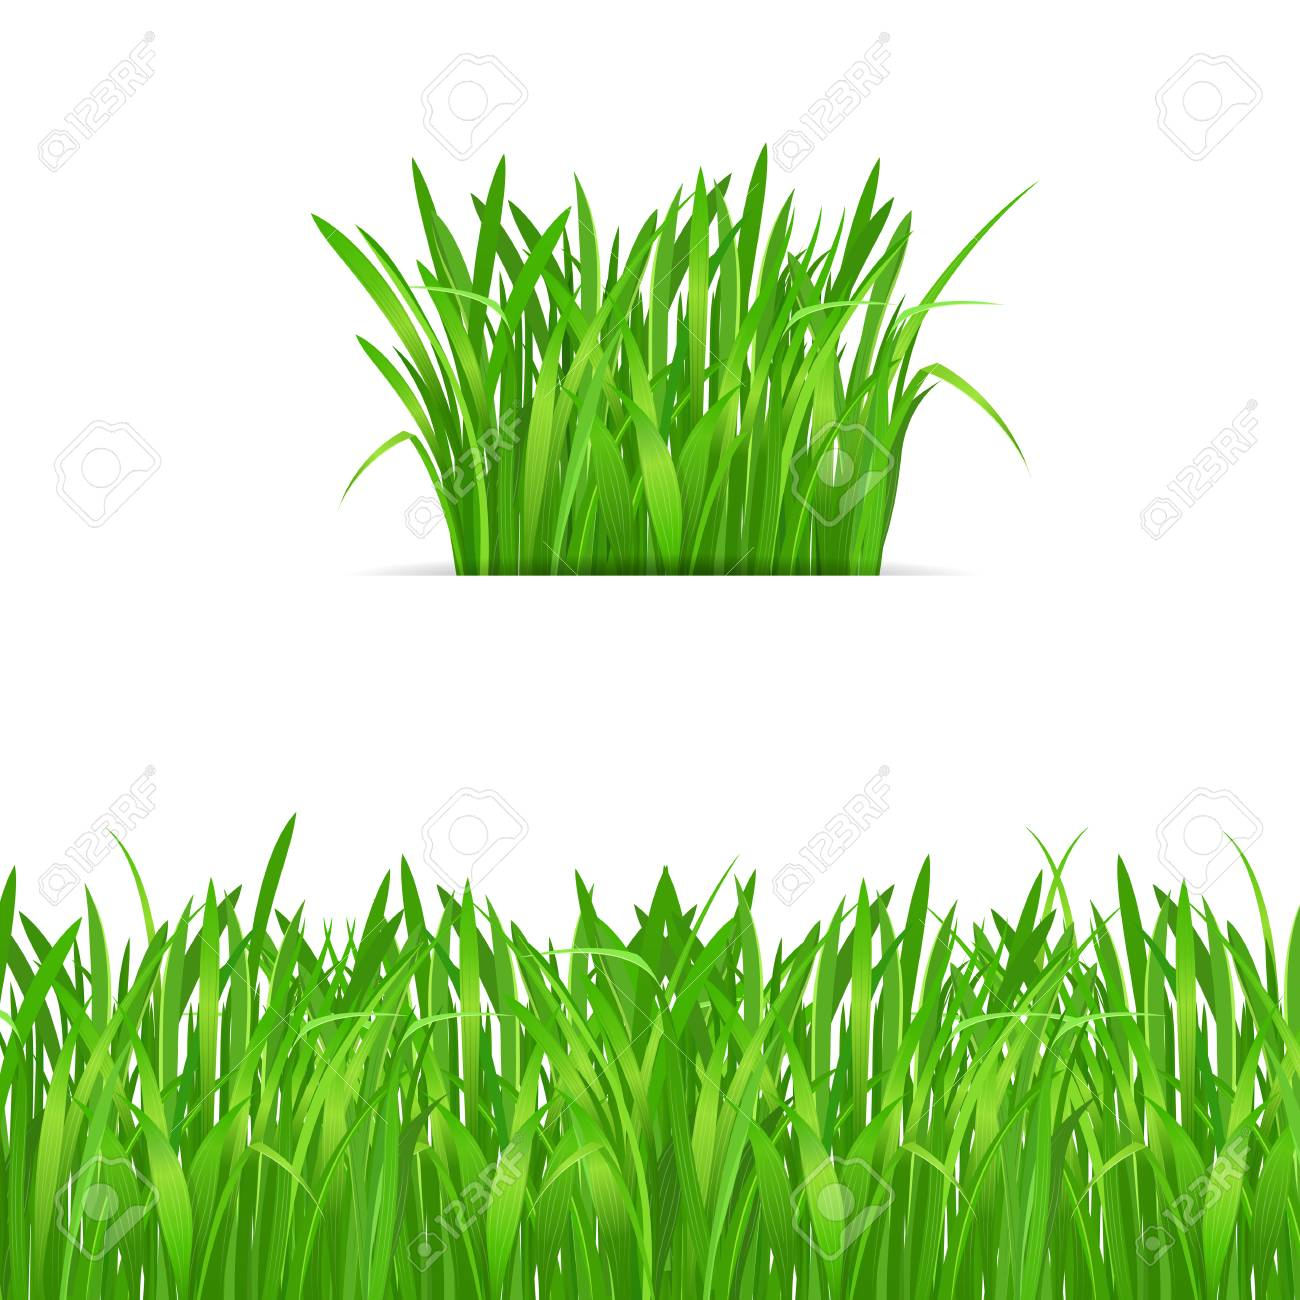 green grass tuft and border on white background nature design